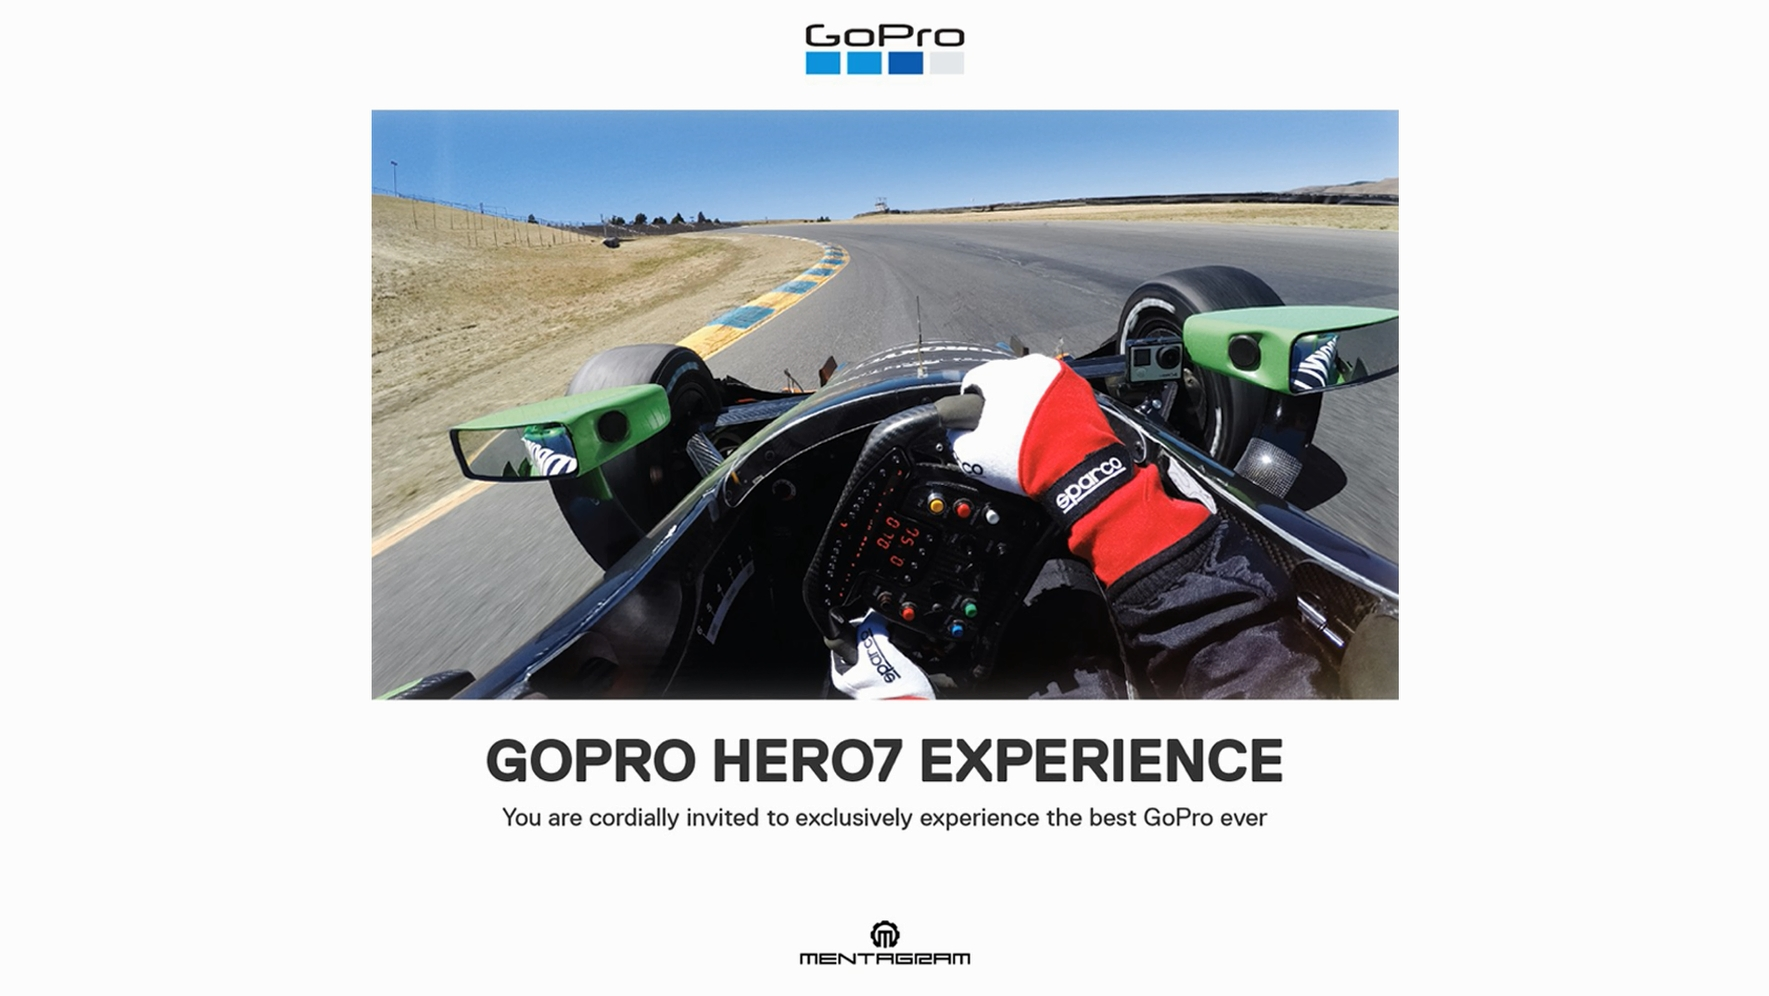 GOPRO HERO EXCLUSIVELY EXPERIENCE